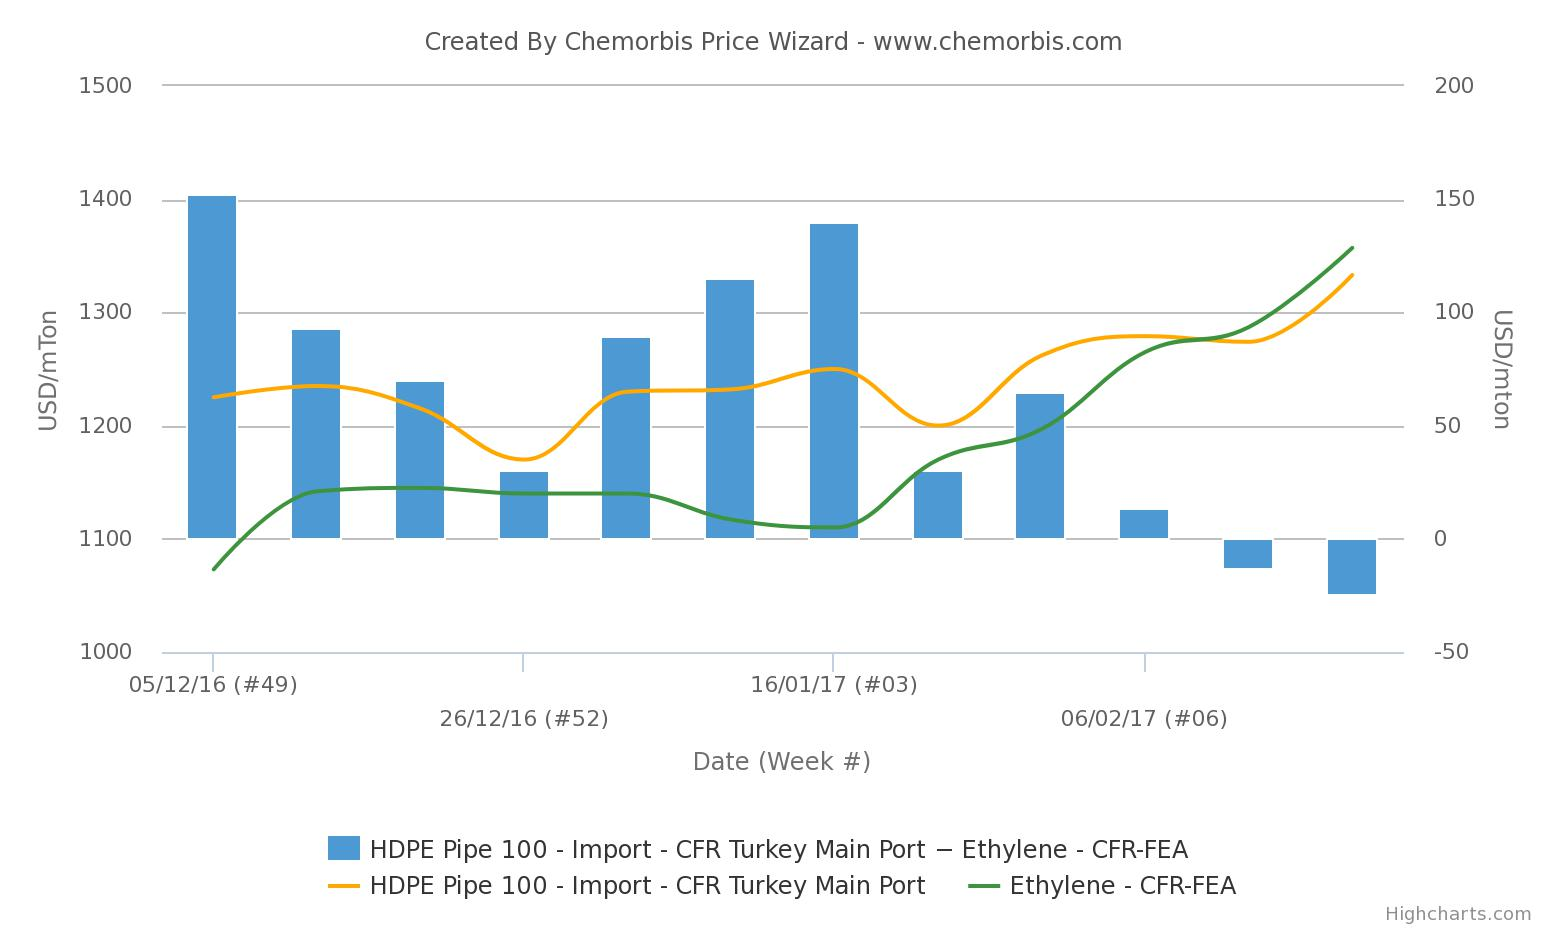 Korean HDPE 100 pipe prices increase in Turkey - ChemOrbis com